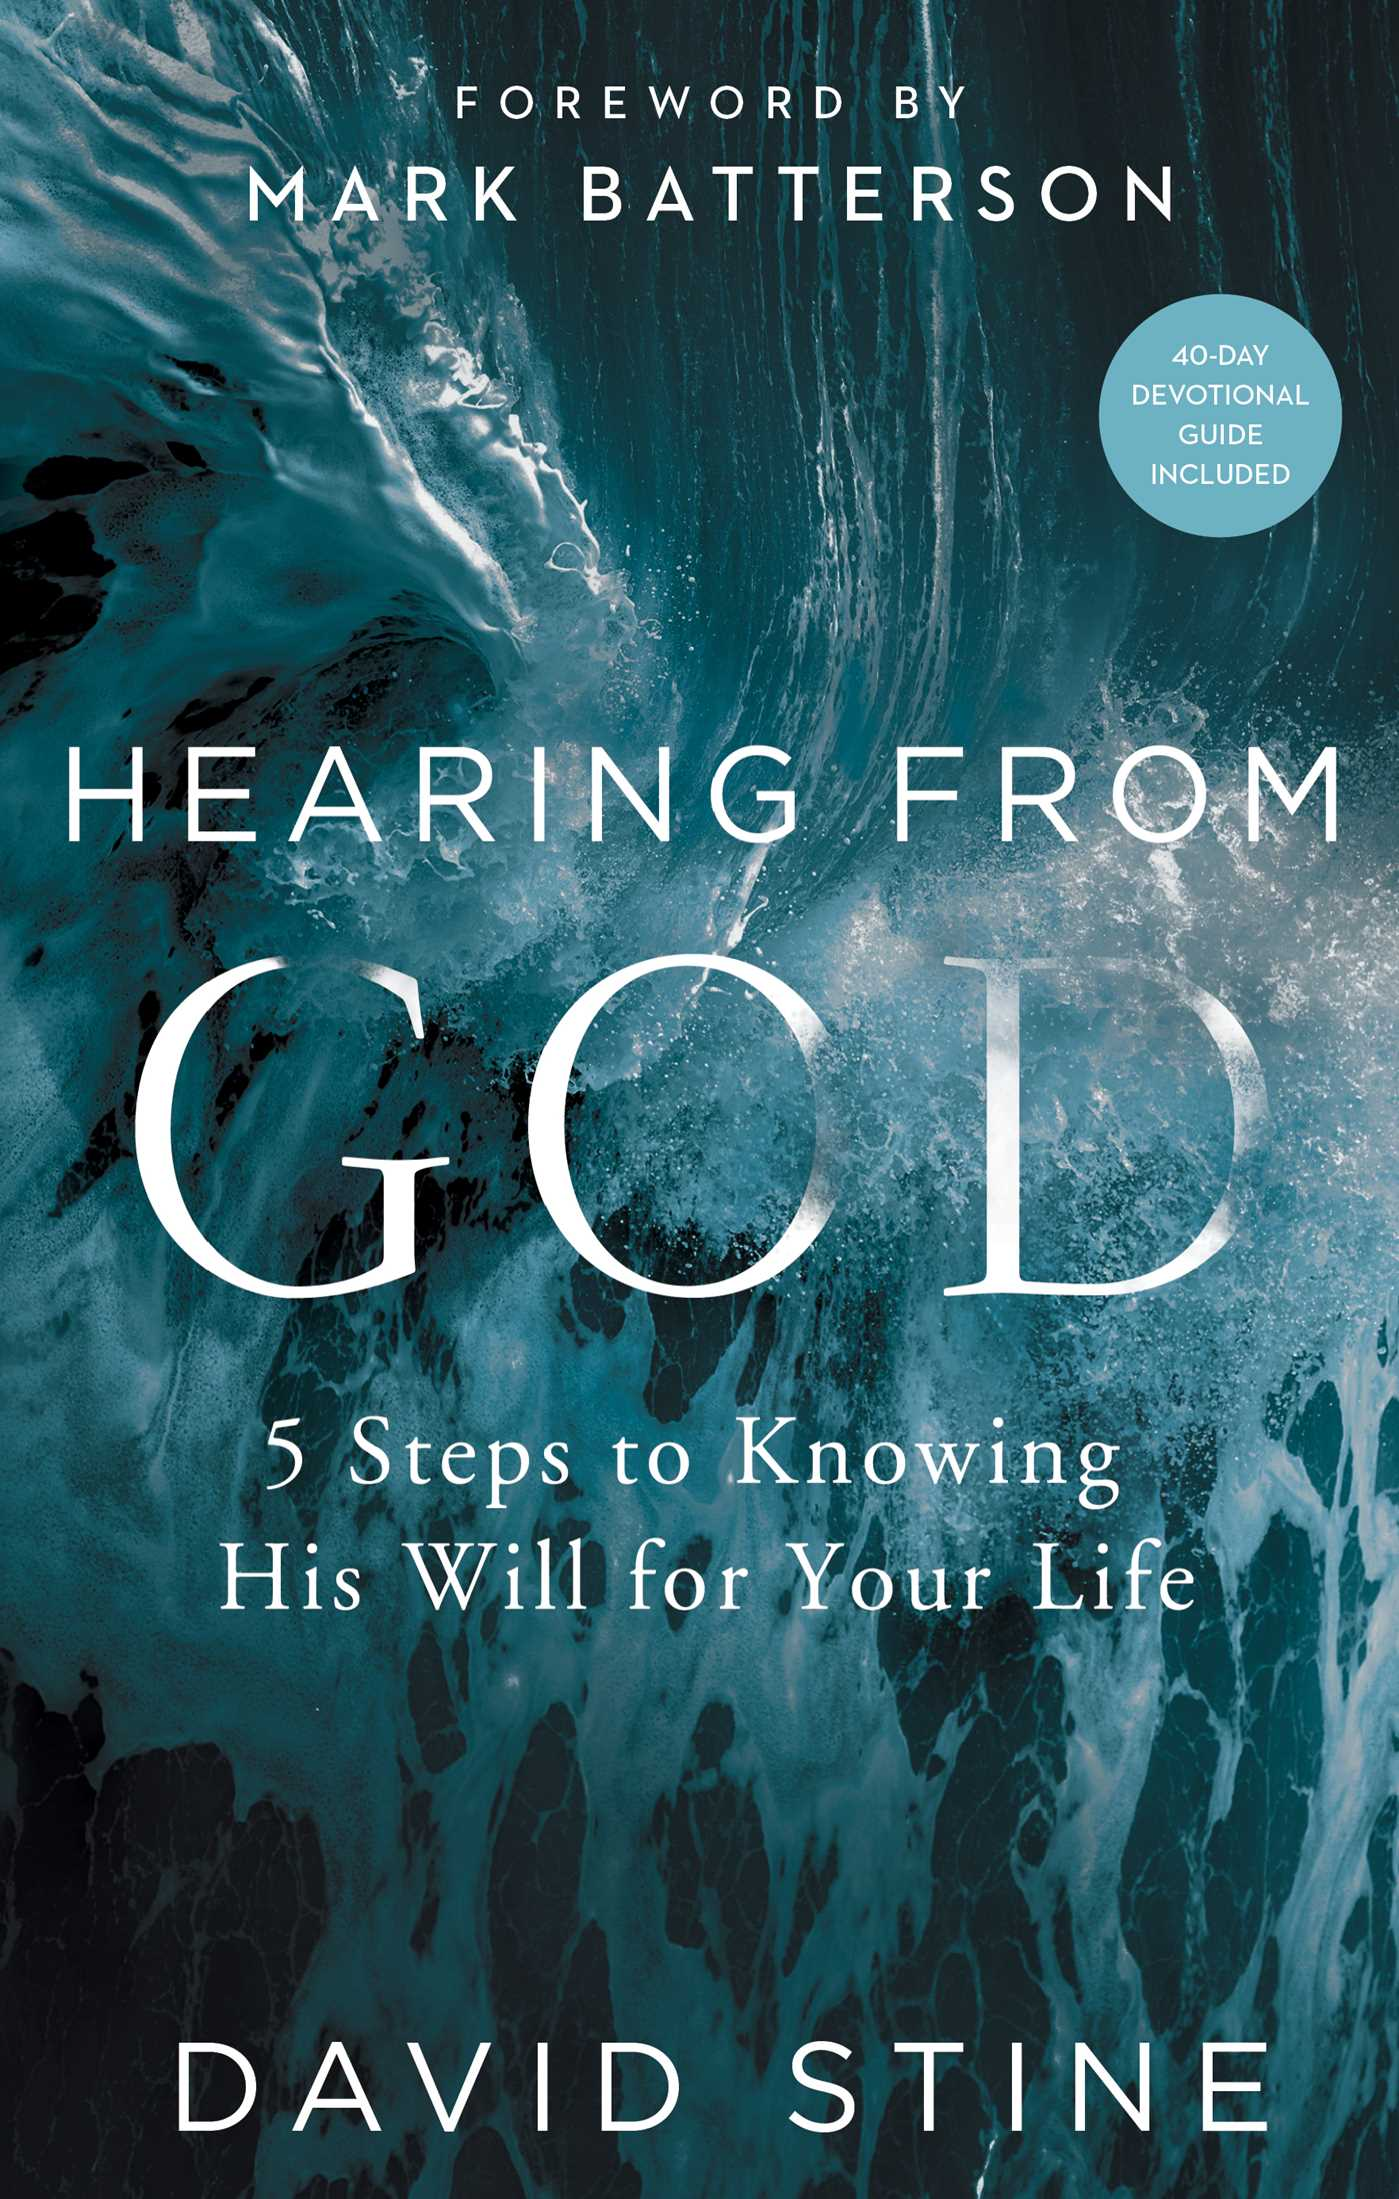 Hearing from god 9781501147326 hr